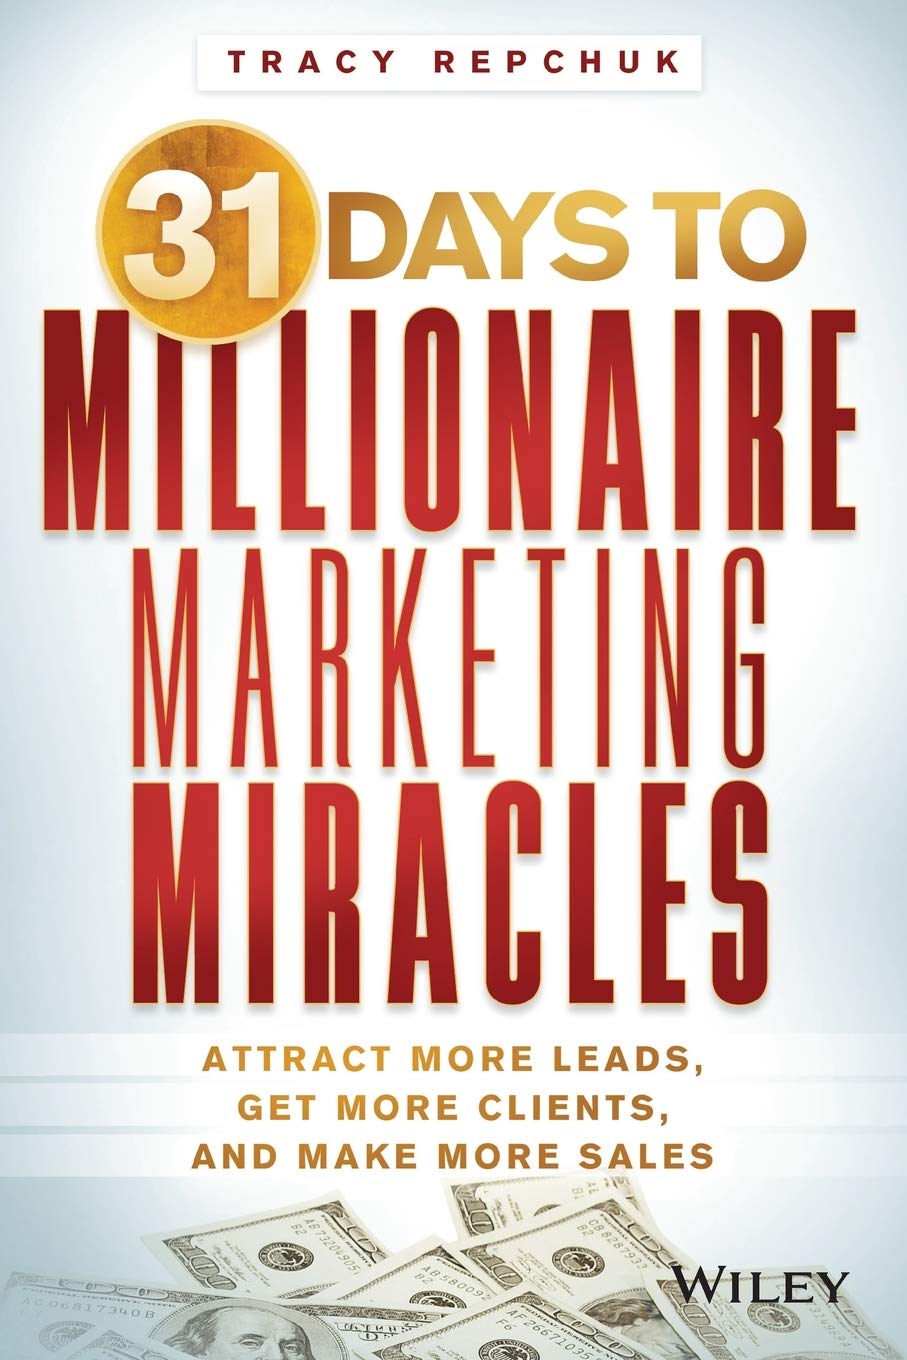 31 Days to Millionaire Marketing Miracles: Attract More Leads, Get More Clients, and Make More Sales PDF